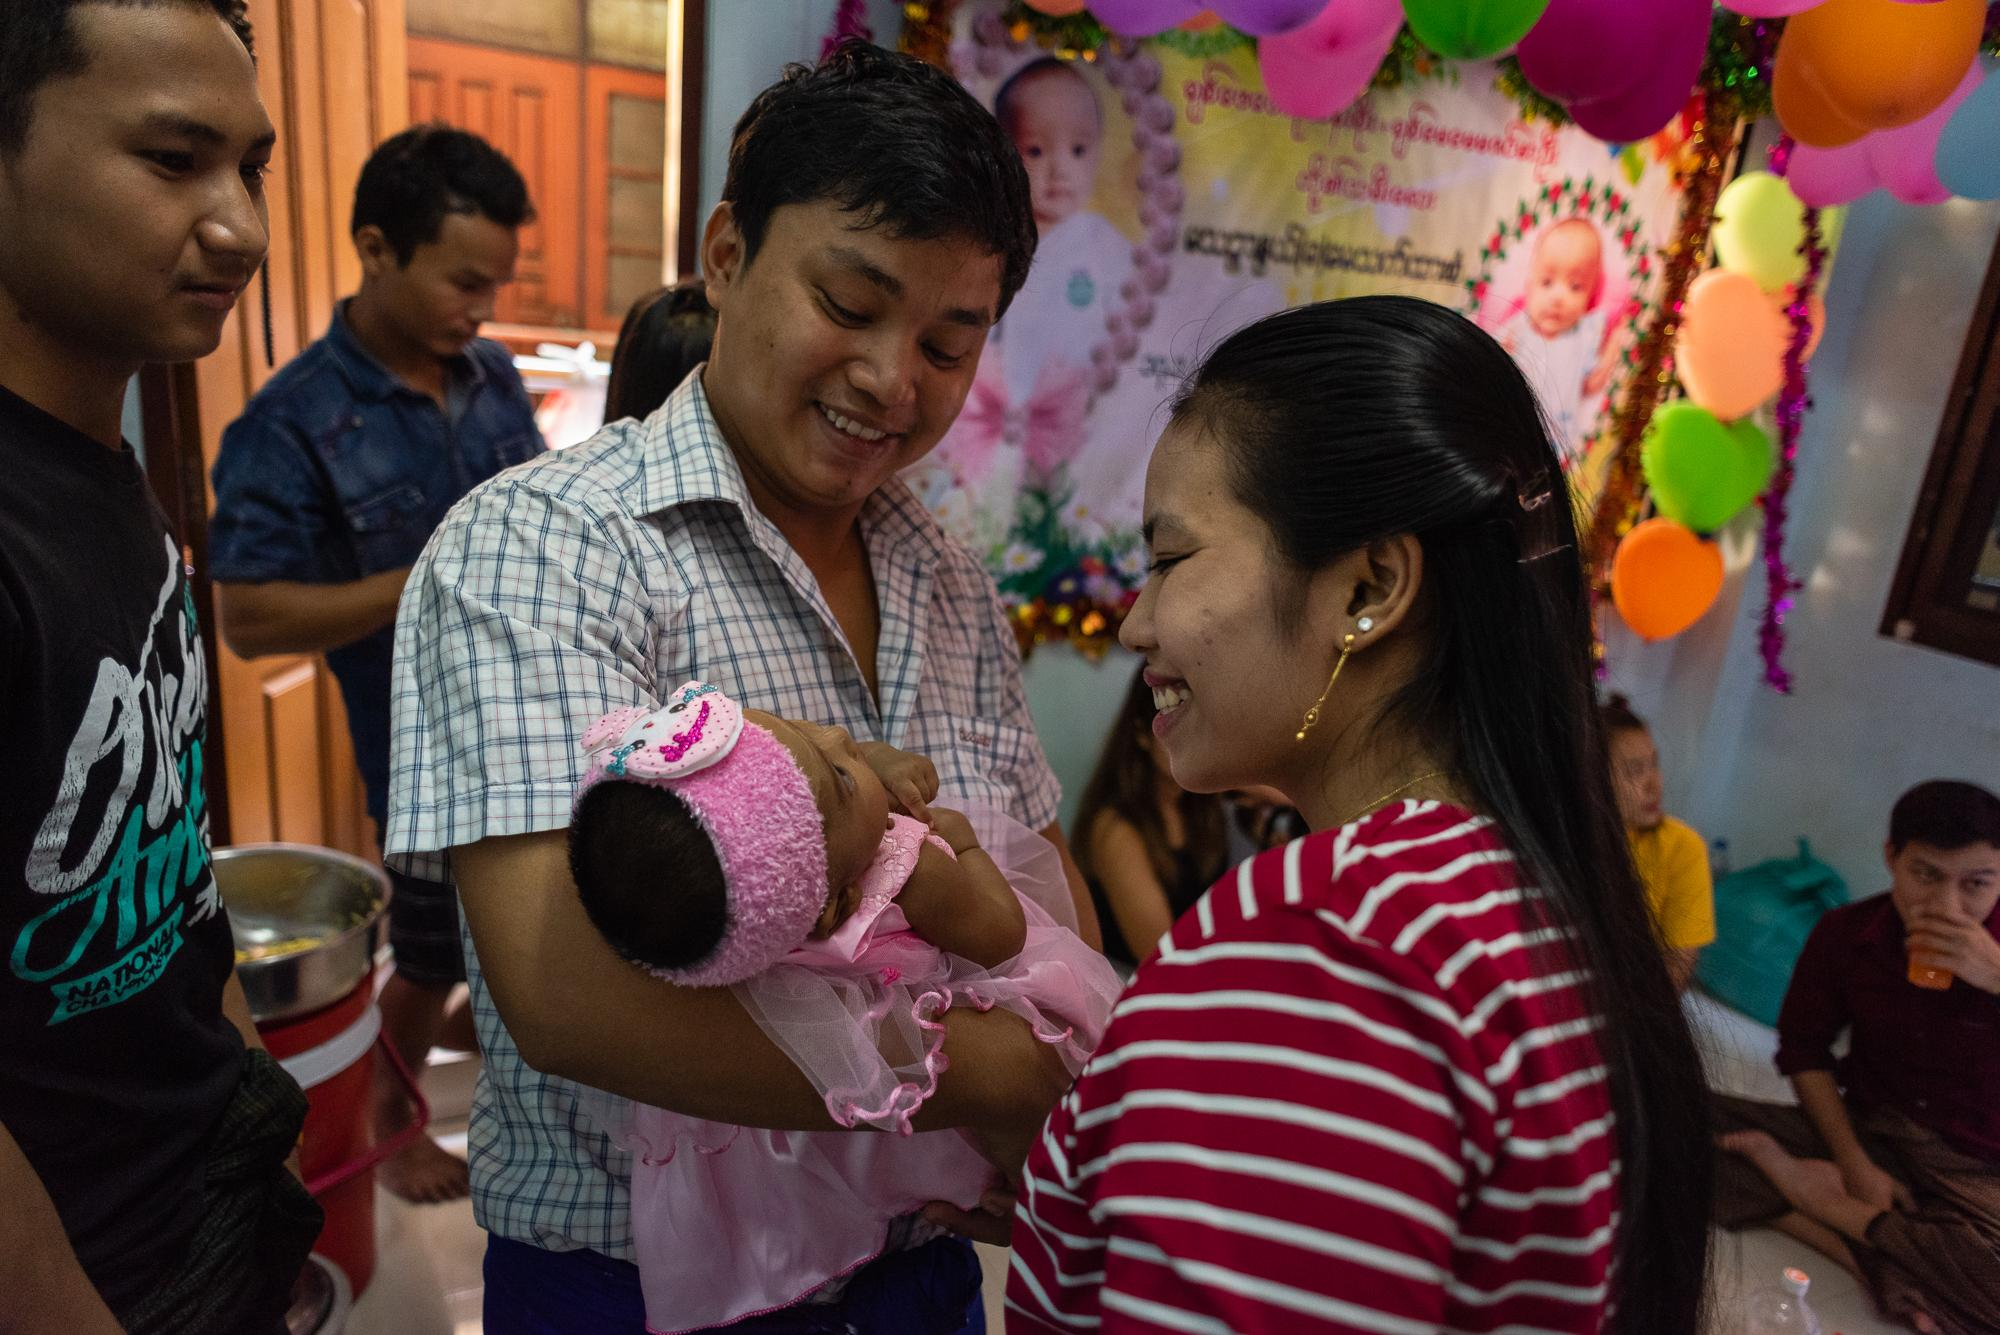 BANGKOK, THAILAND – DECEMBER 17, 2018: At a party to celebrate and welcome a newborn of a Burmese worker family in Yaowarat.